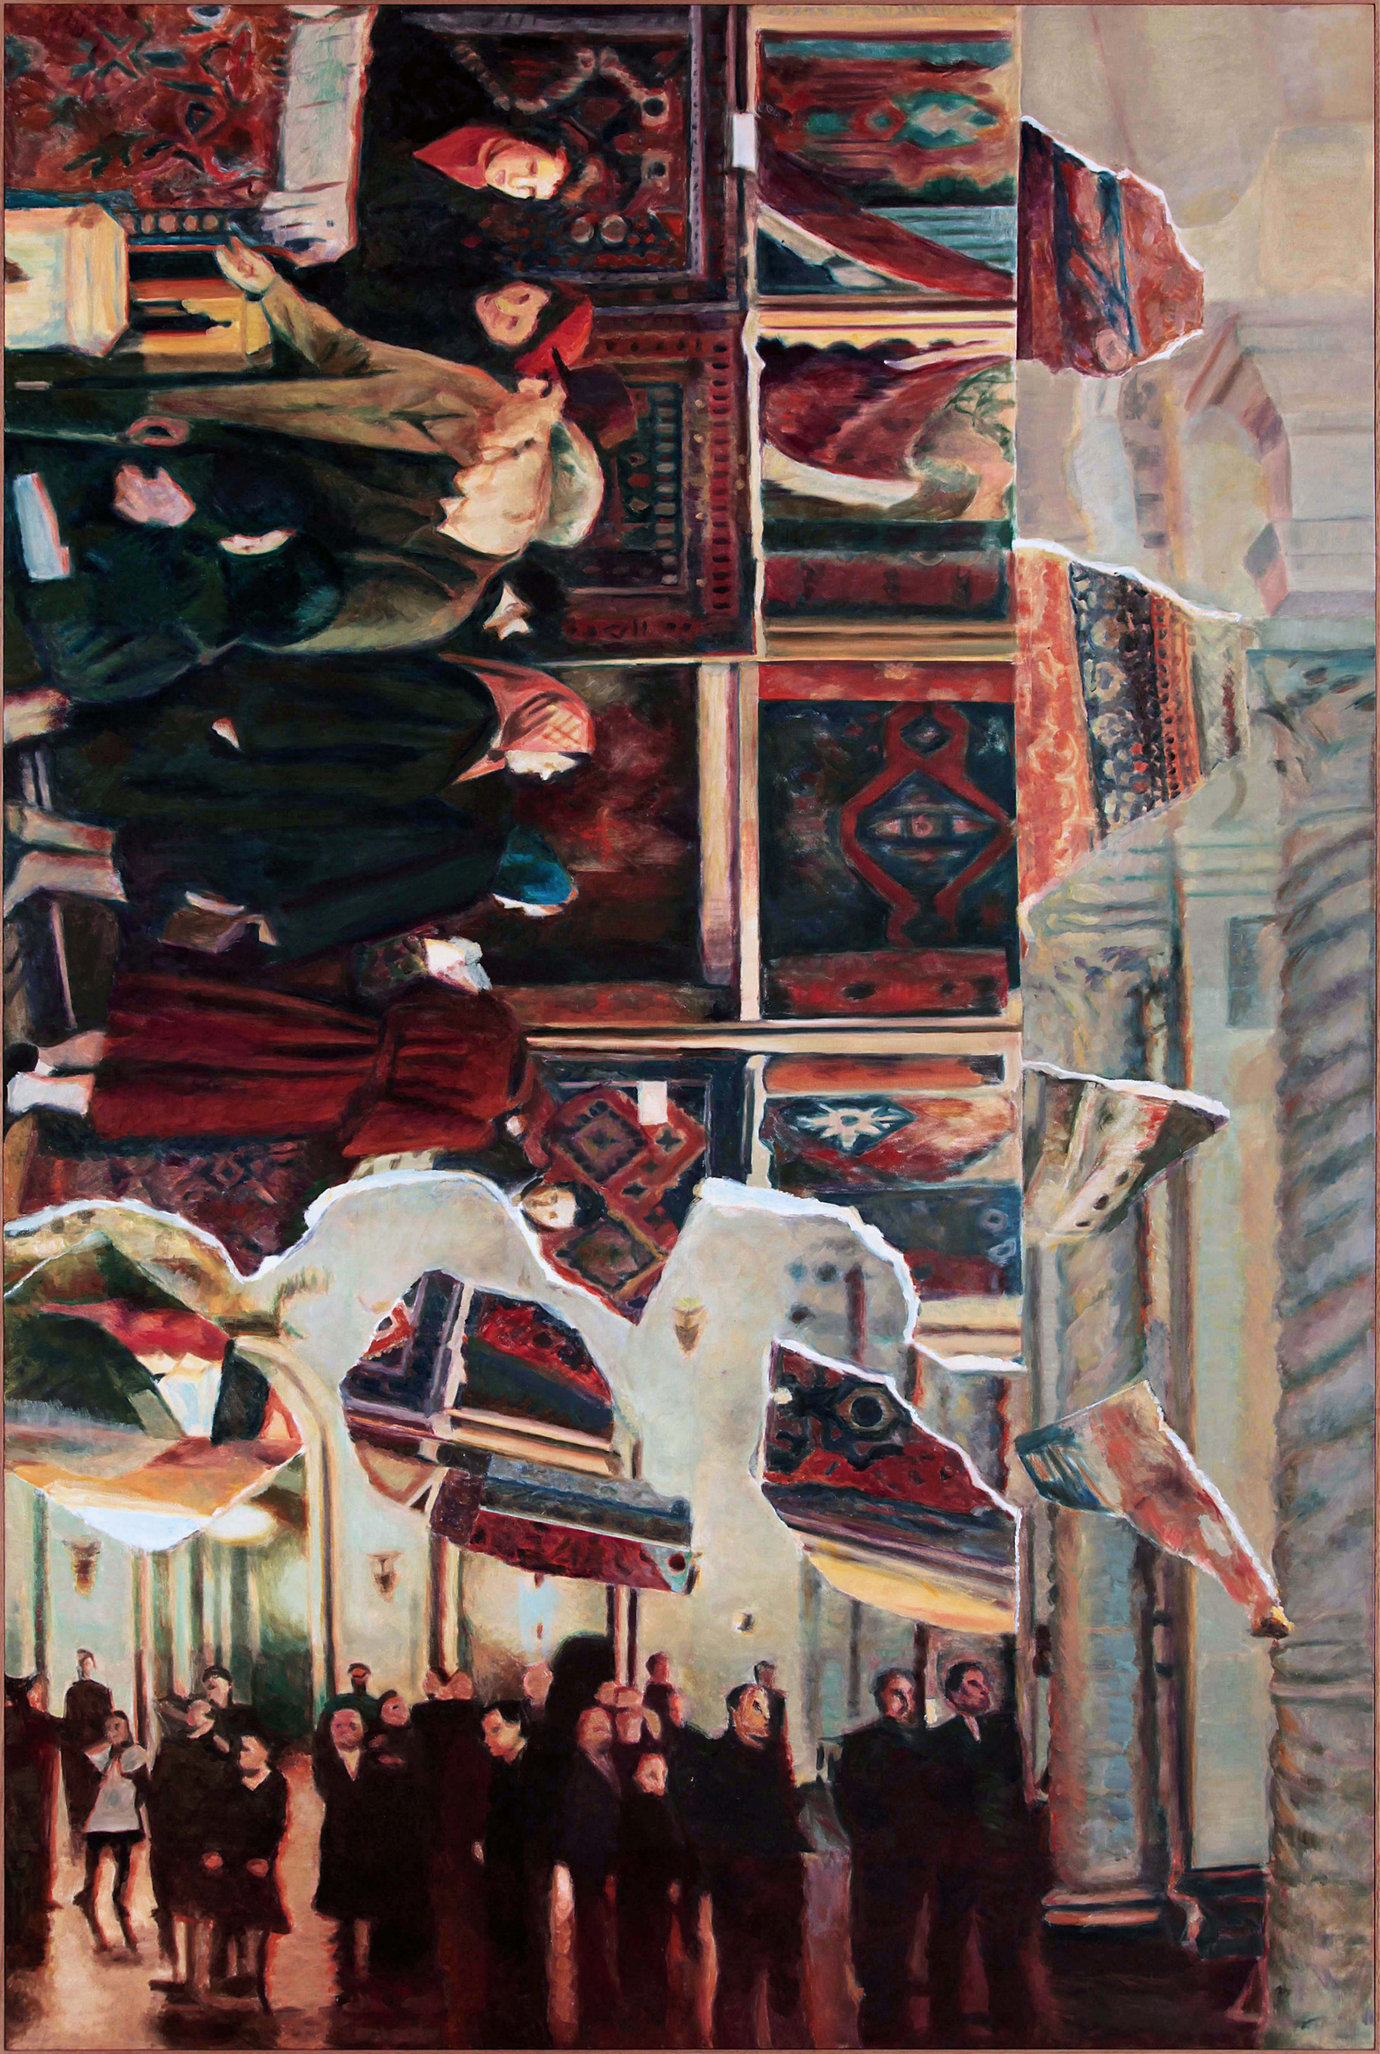 ", 2012. oil on canvas, 9' 4"" x 6' 3"" (284.5 cm x 190.5 cm)."